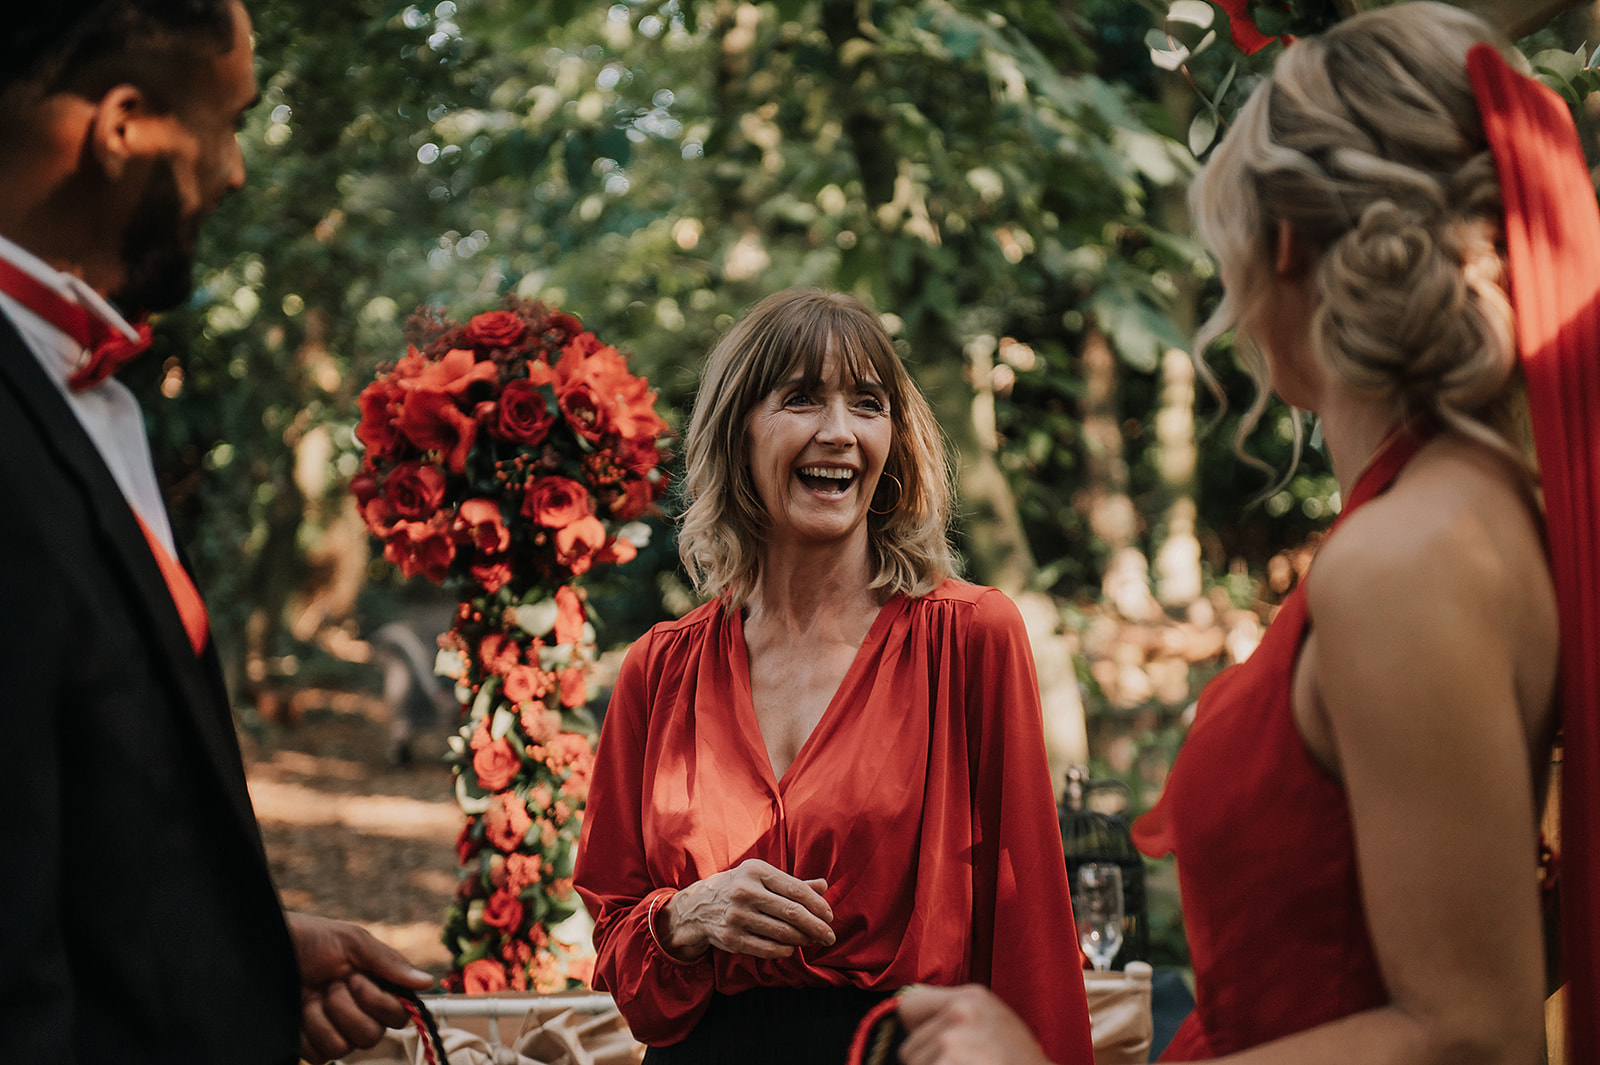 red wedding in the forest - celebrant wedding ceremony - wedding celebrant